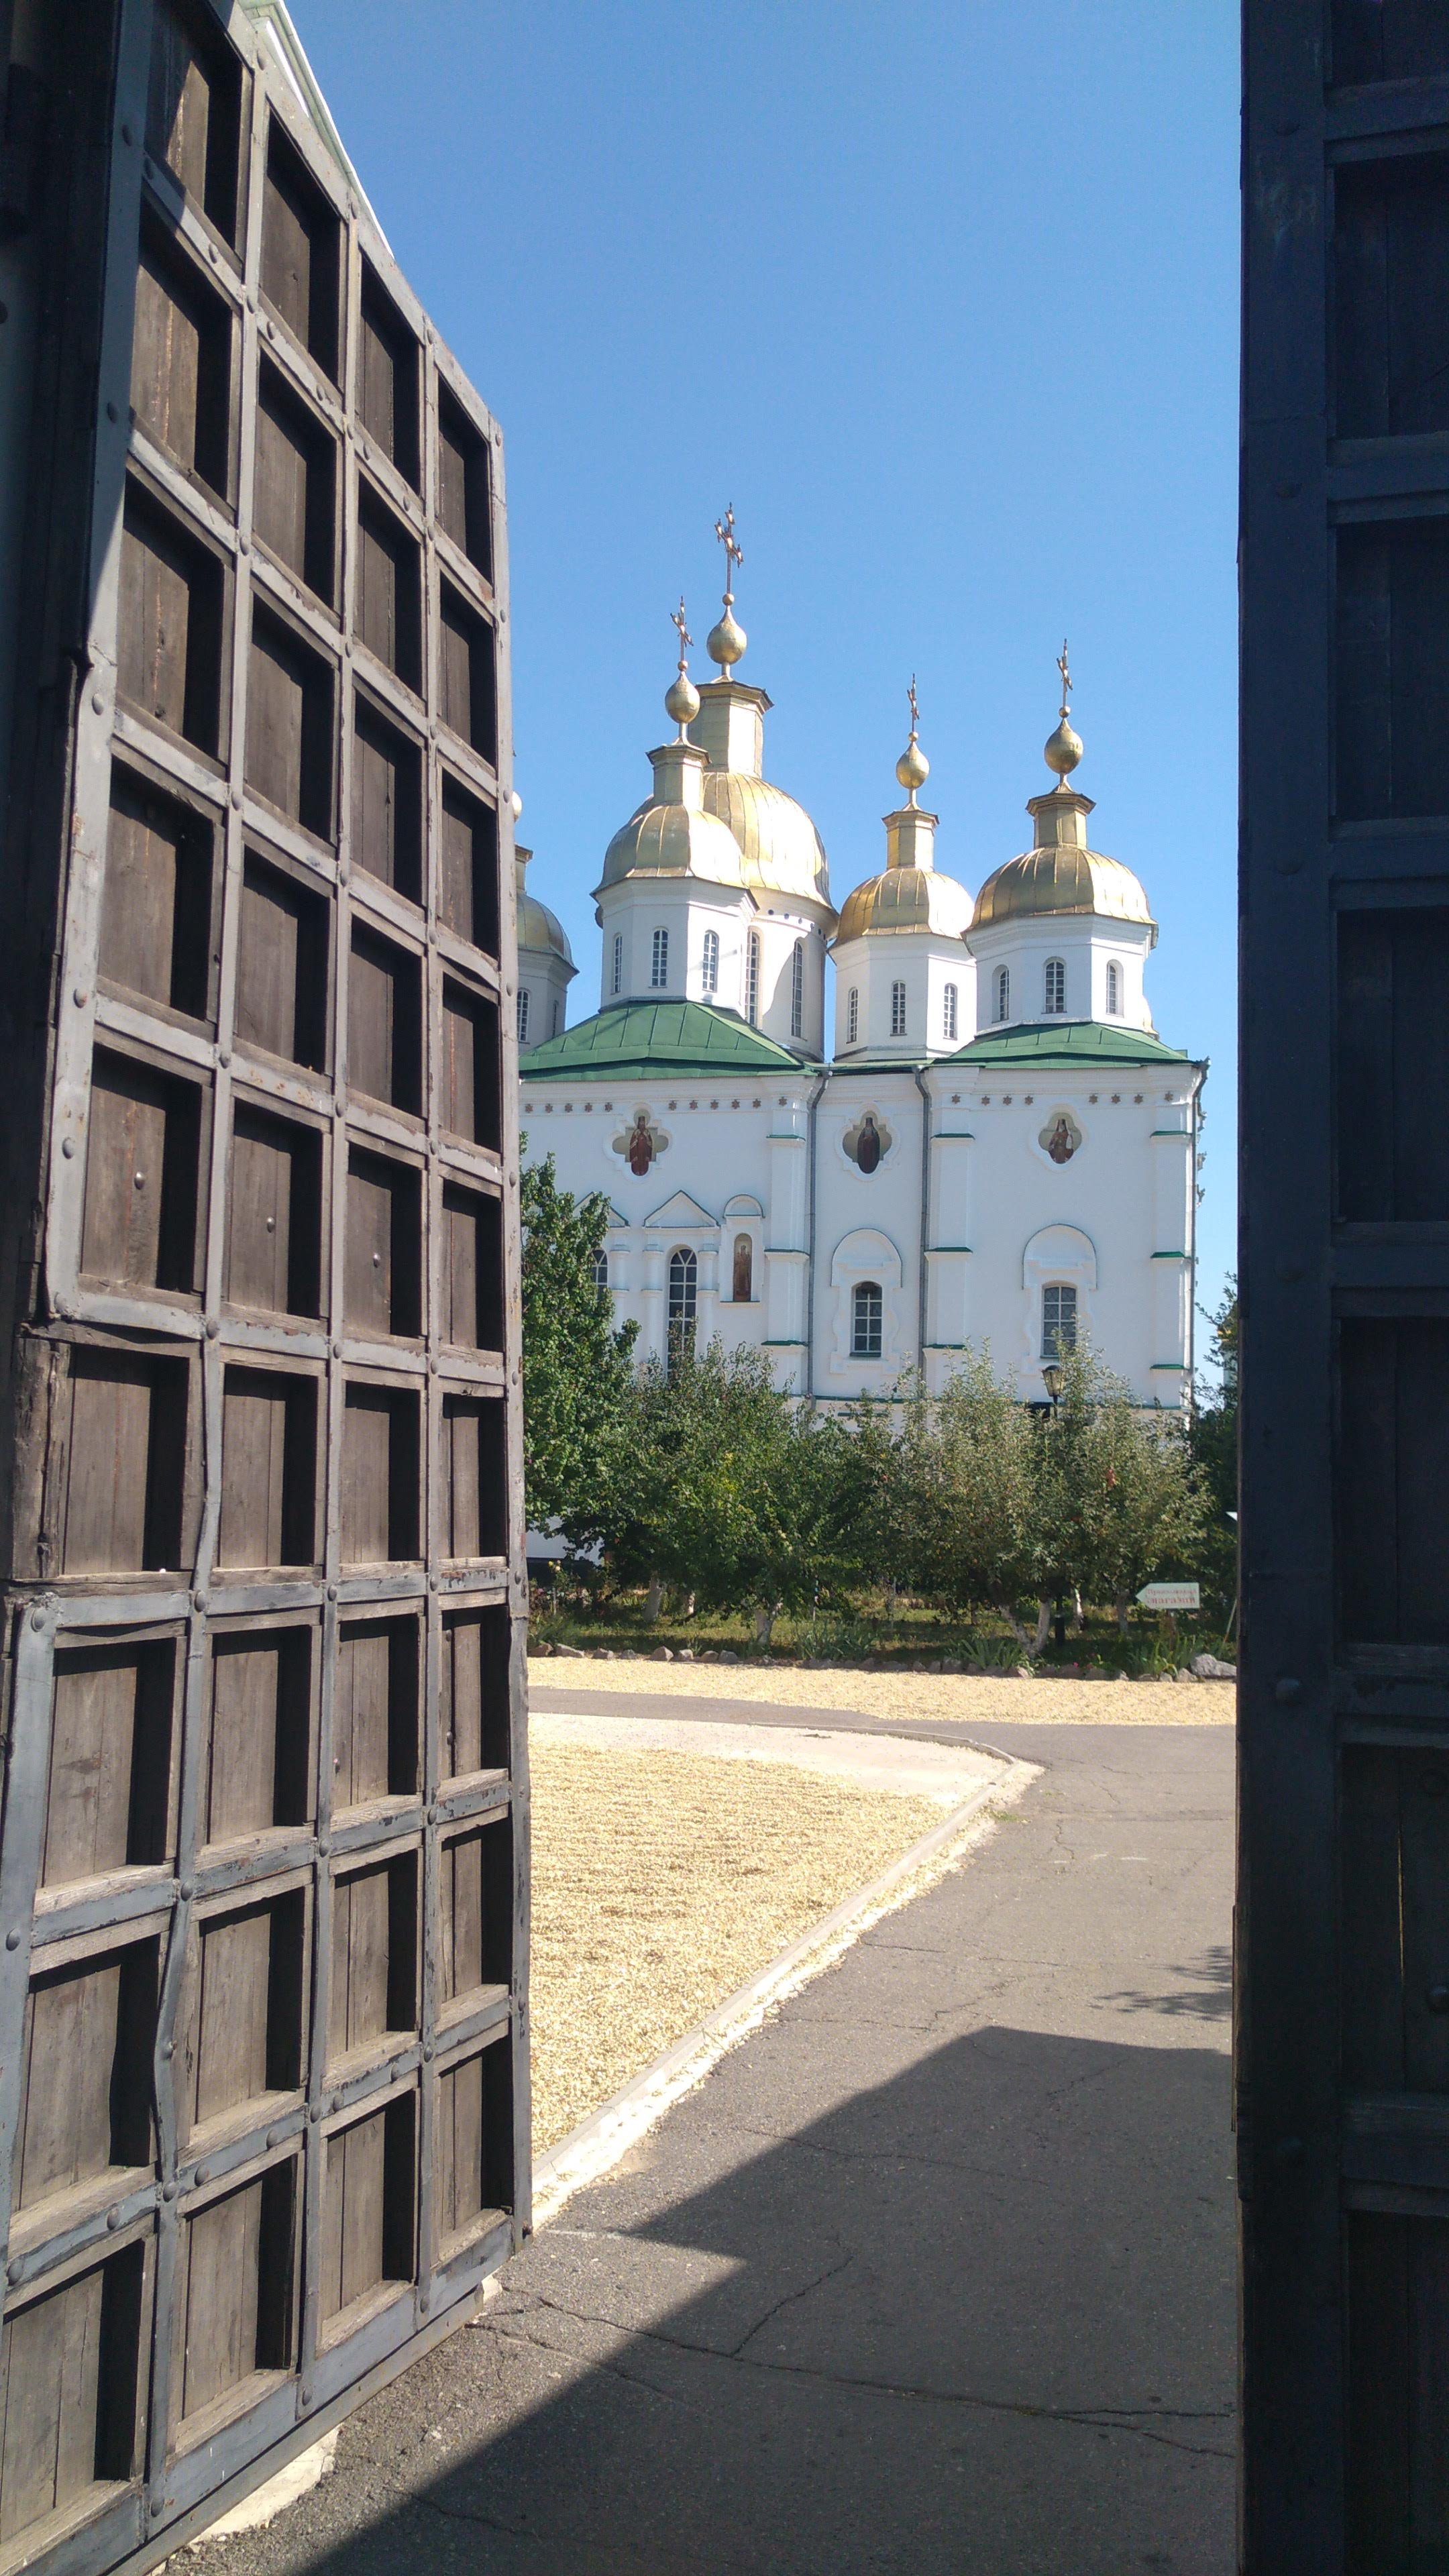 Entry gate to the Holy Cross Monastery showing the cathedral